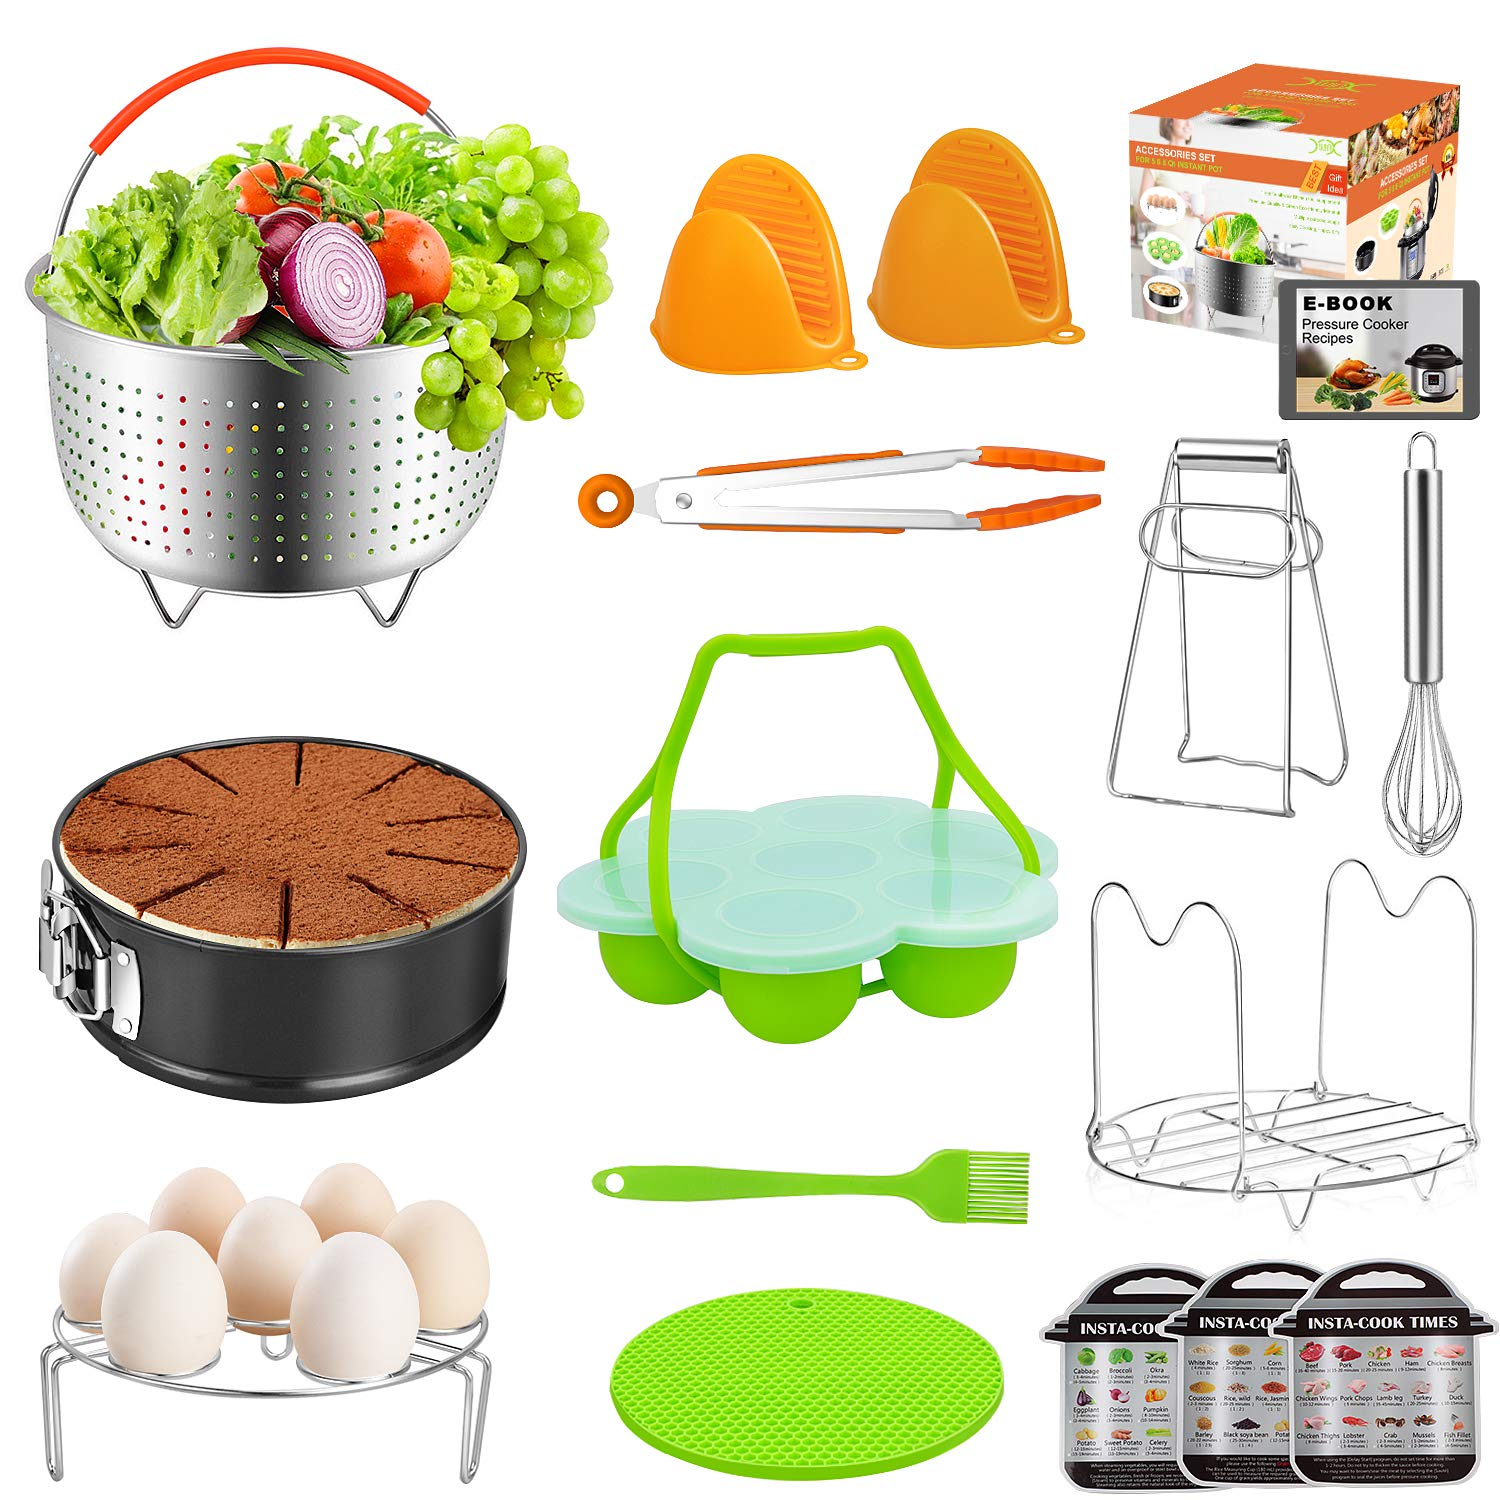 Instant Pot Accessories 15-pc Set Cooking Utensils for Pressure Cooker 5,6,8 Qt, Includes Steamer Basket, Springform Pan, Silicone Egg Bites Mold, Mitts,Tongs, Magnetic Cheat Sheets(BONUS RECIPES)